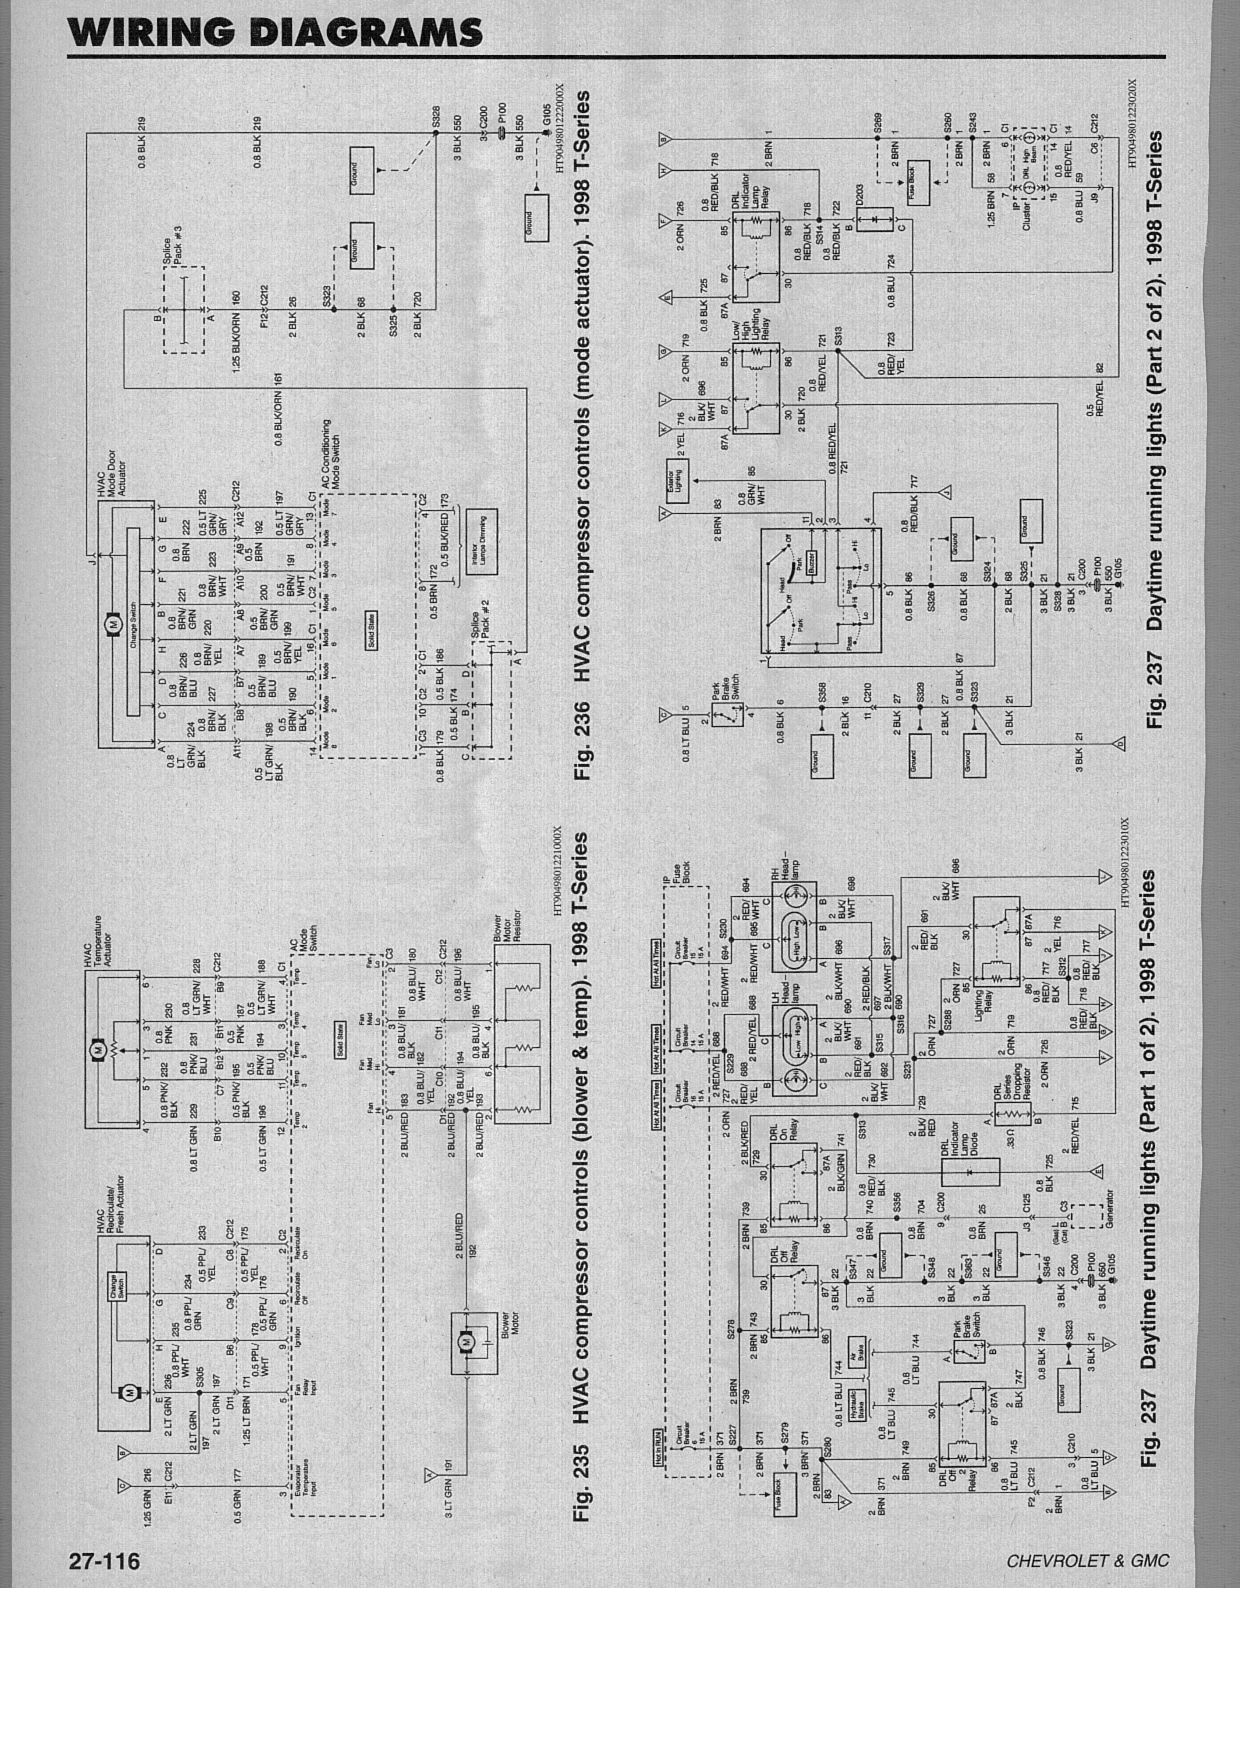 Need AC    wiring       diagram    for 99    GMC    T6500 truck Has Isuzu ponents